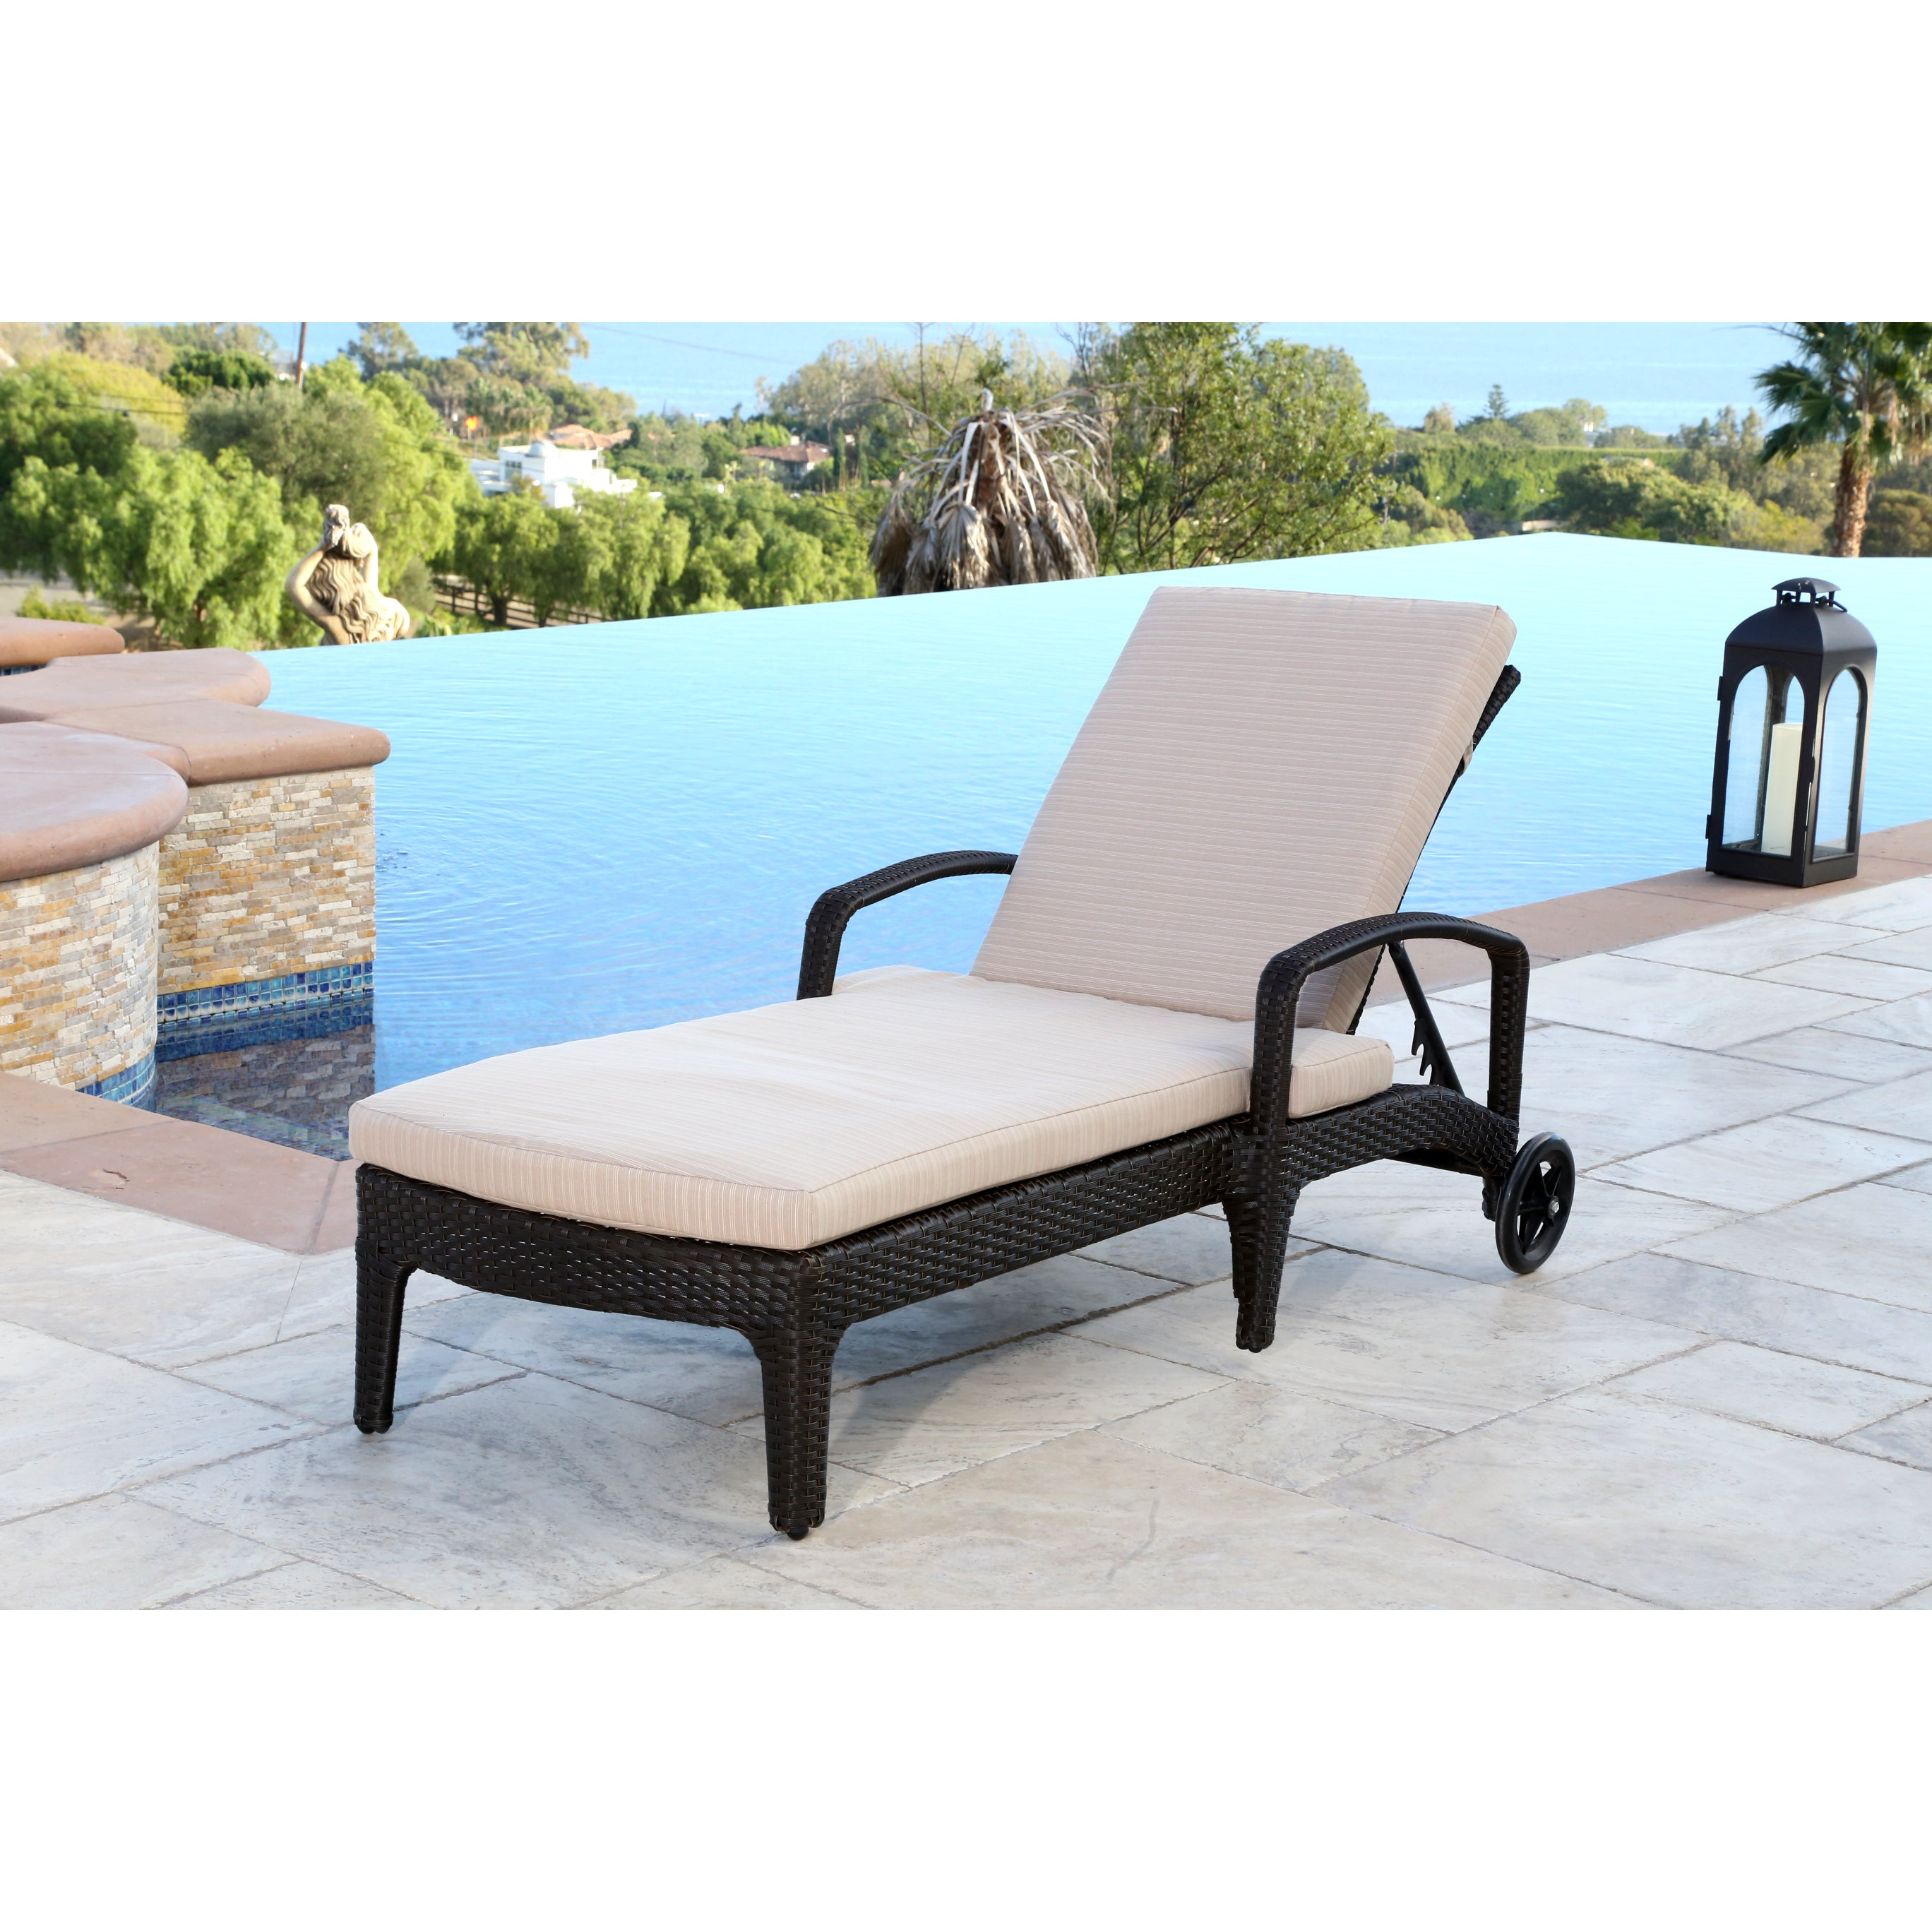 Remarkable Details About Abbyson Newport Outdoor Wicker Chaise Lounge With Cushion Brown Caraccident5 Cool Chair Designs And Ideas Caraccident5Info